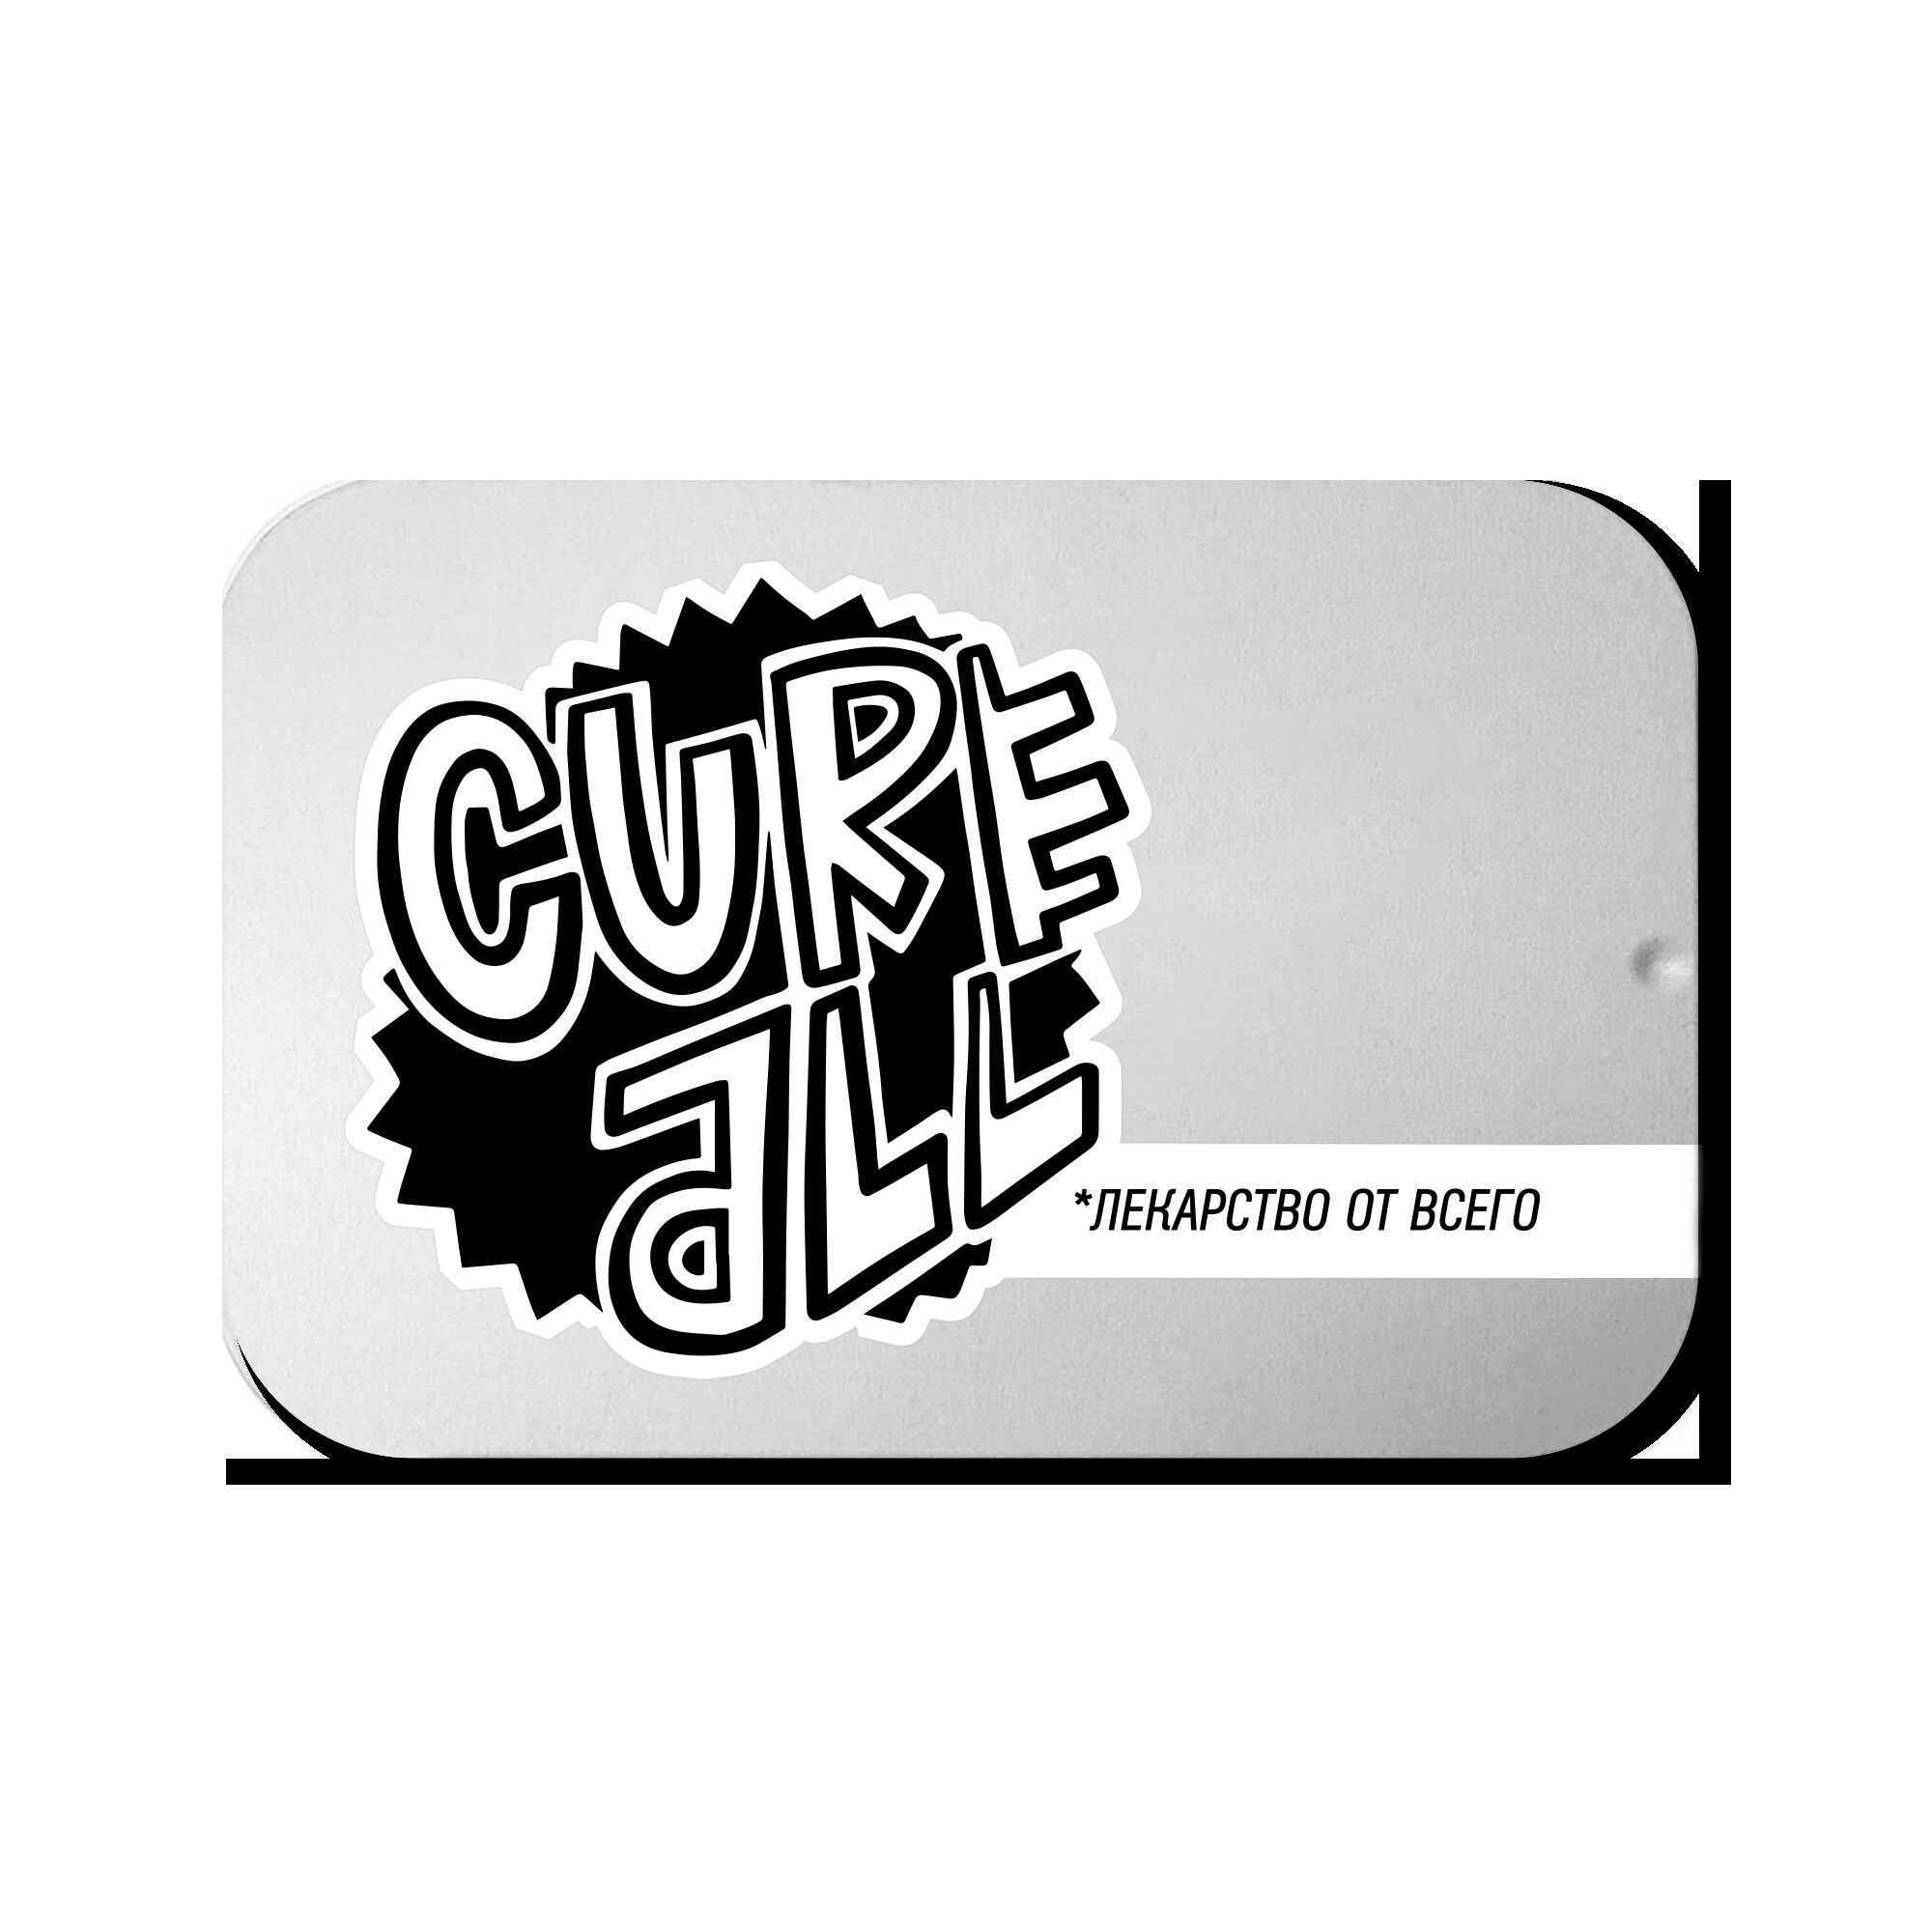 Cure-All drops